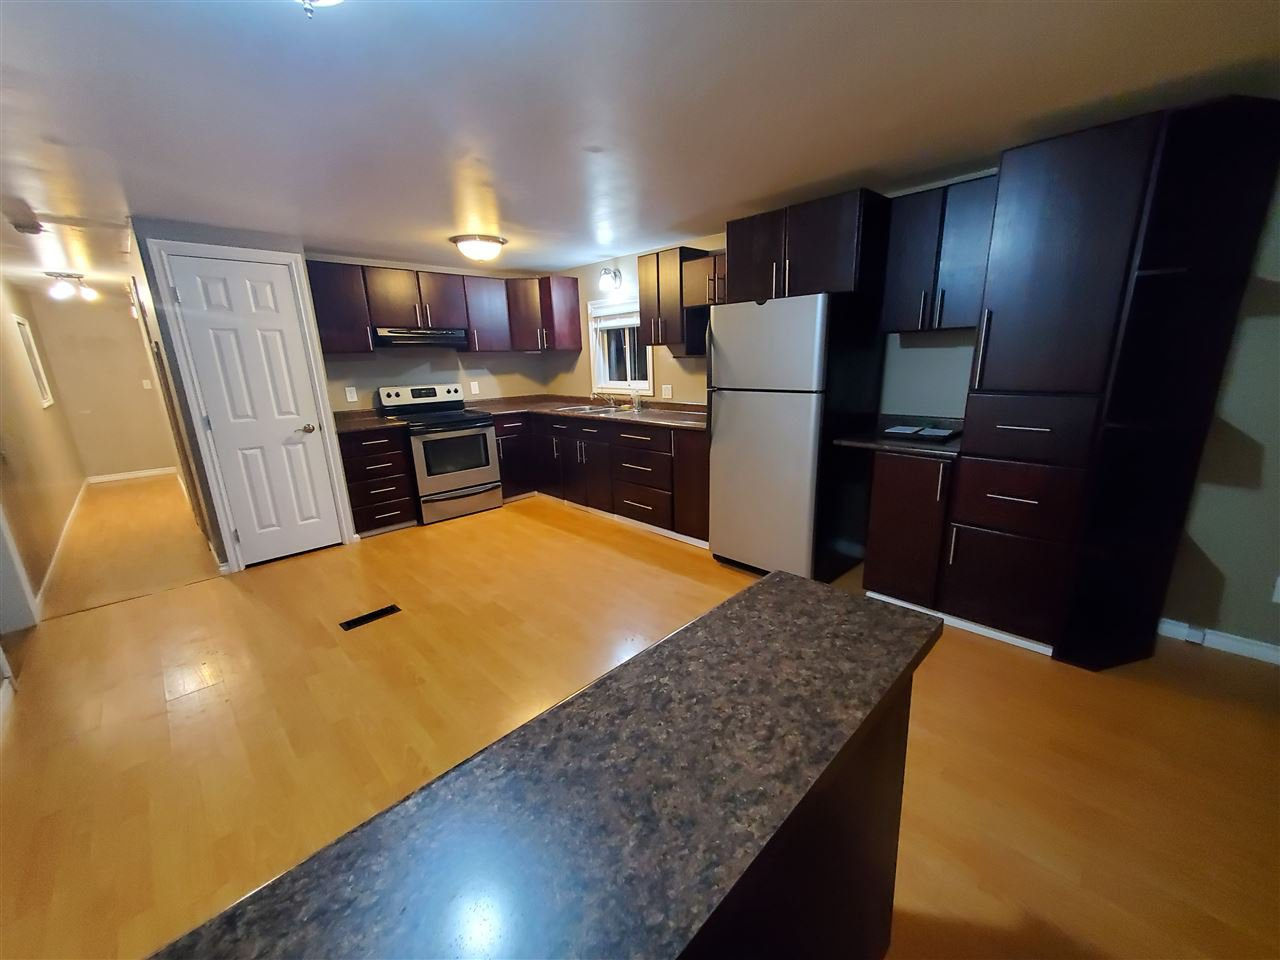 Main Photo: 15 2288 GASSOFF Road in Quesnel: Red Bluff/Dragon Lake Manufactured Home for sale (Quesnel (Zone 28))  : MLS®# R2425004